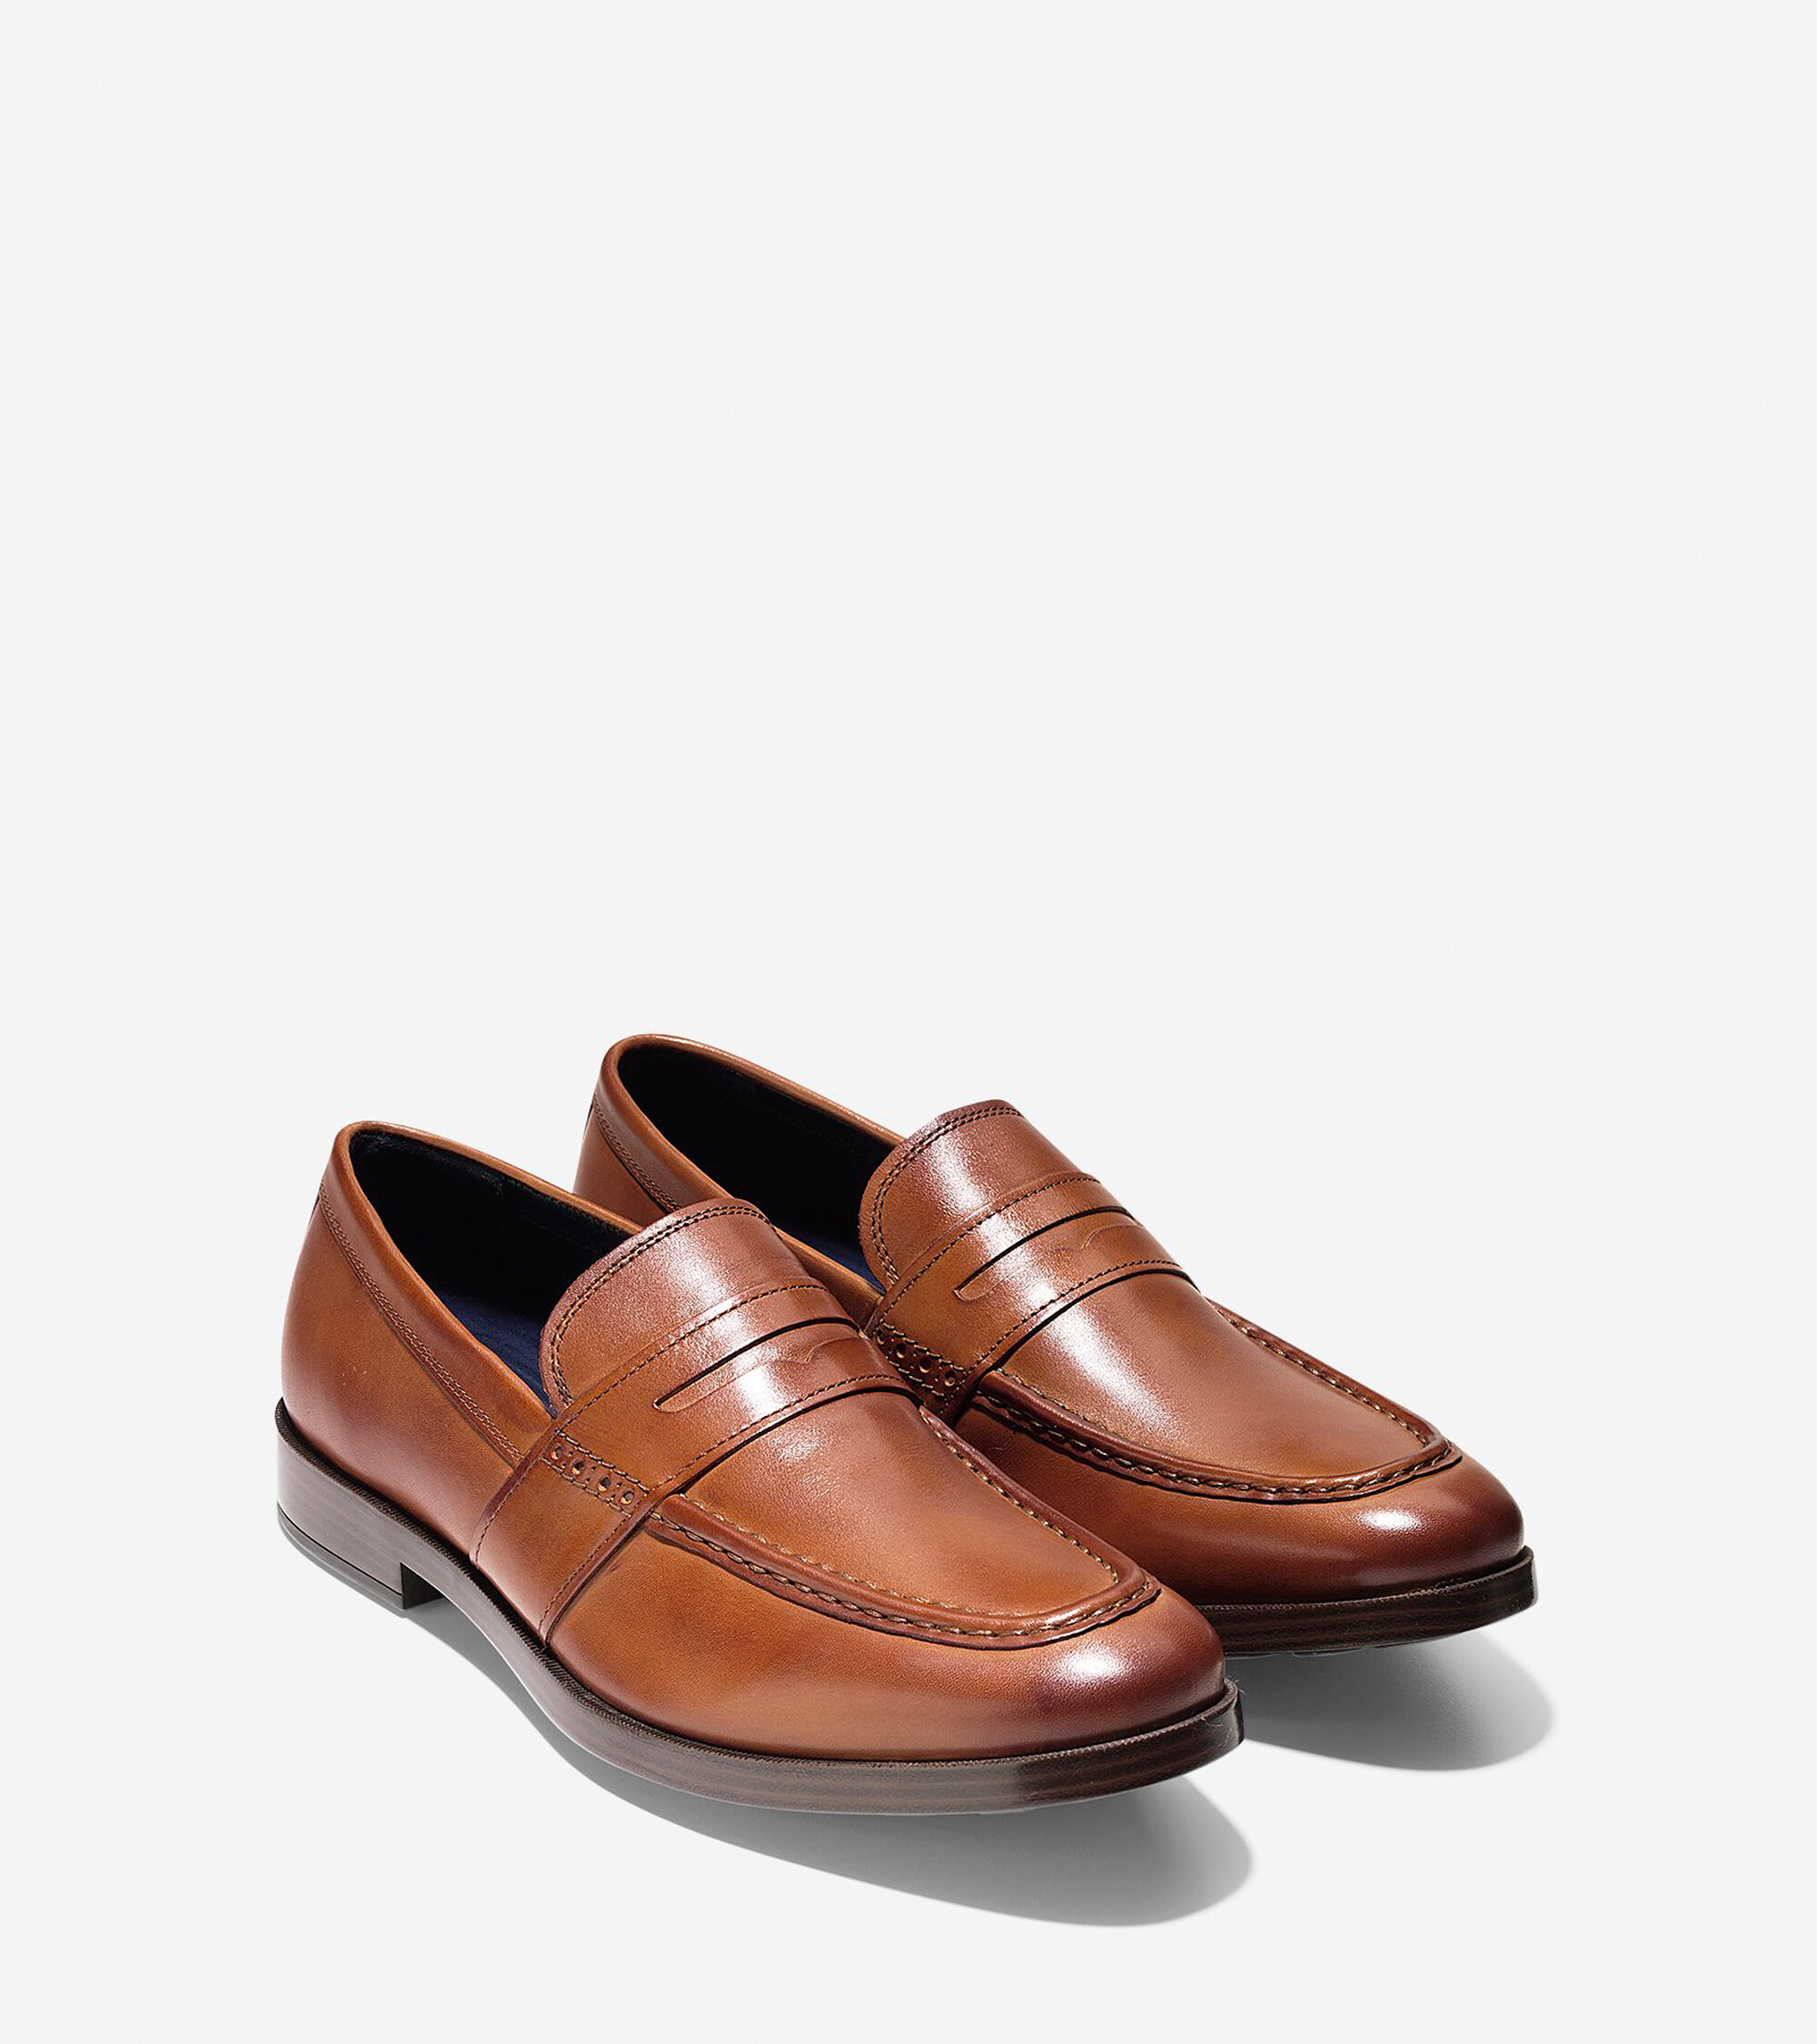 cc363d44e6a ... Jefferson Grand Penny Loafer · Jefferson Grand Penny Loafer.  COLEHAAN